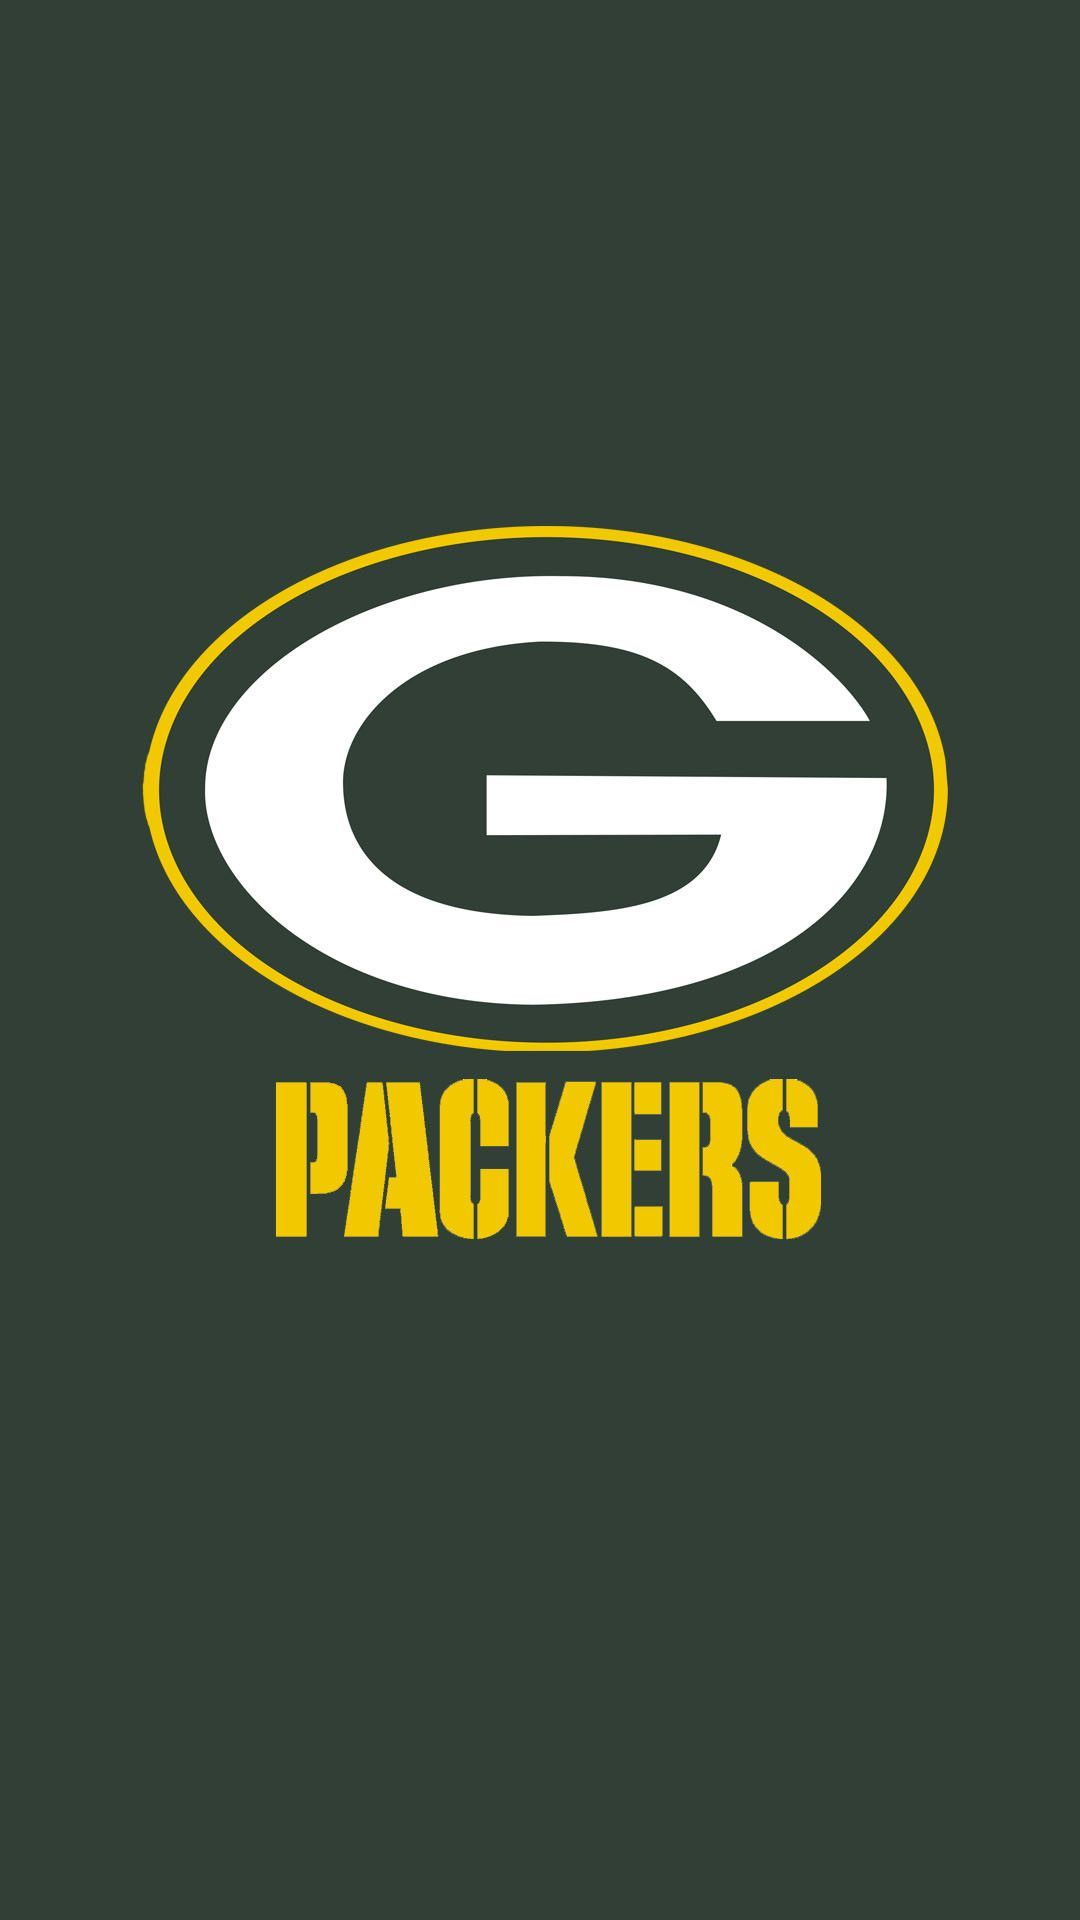 Nhl Green Packers Wallpaper Iphone Green Bay Packers Wallpaper Iphone Green B In 2020 Green Bay Packers Wallpaper Green Bay Packers Green Bay Packers Clothing